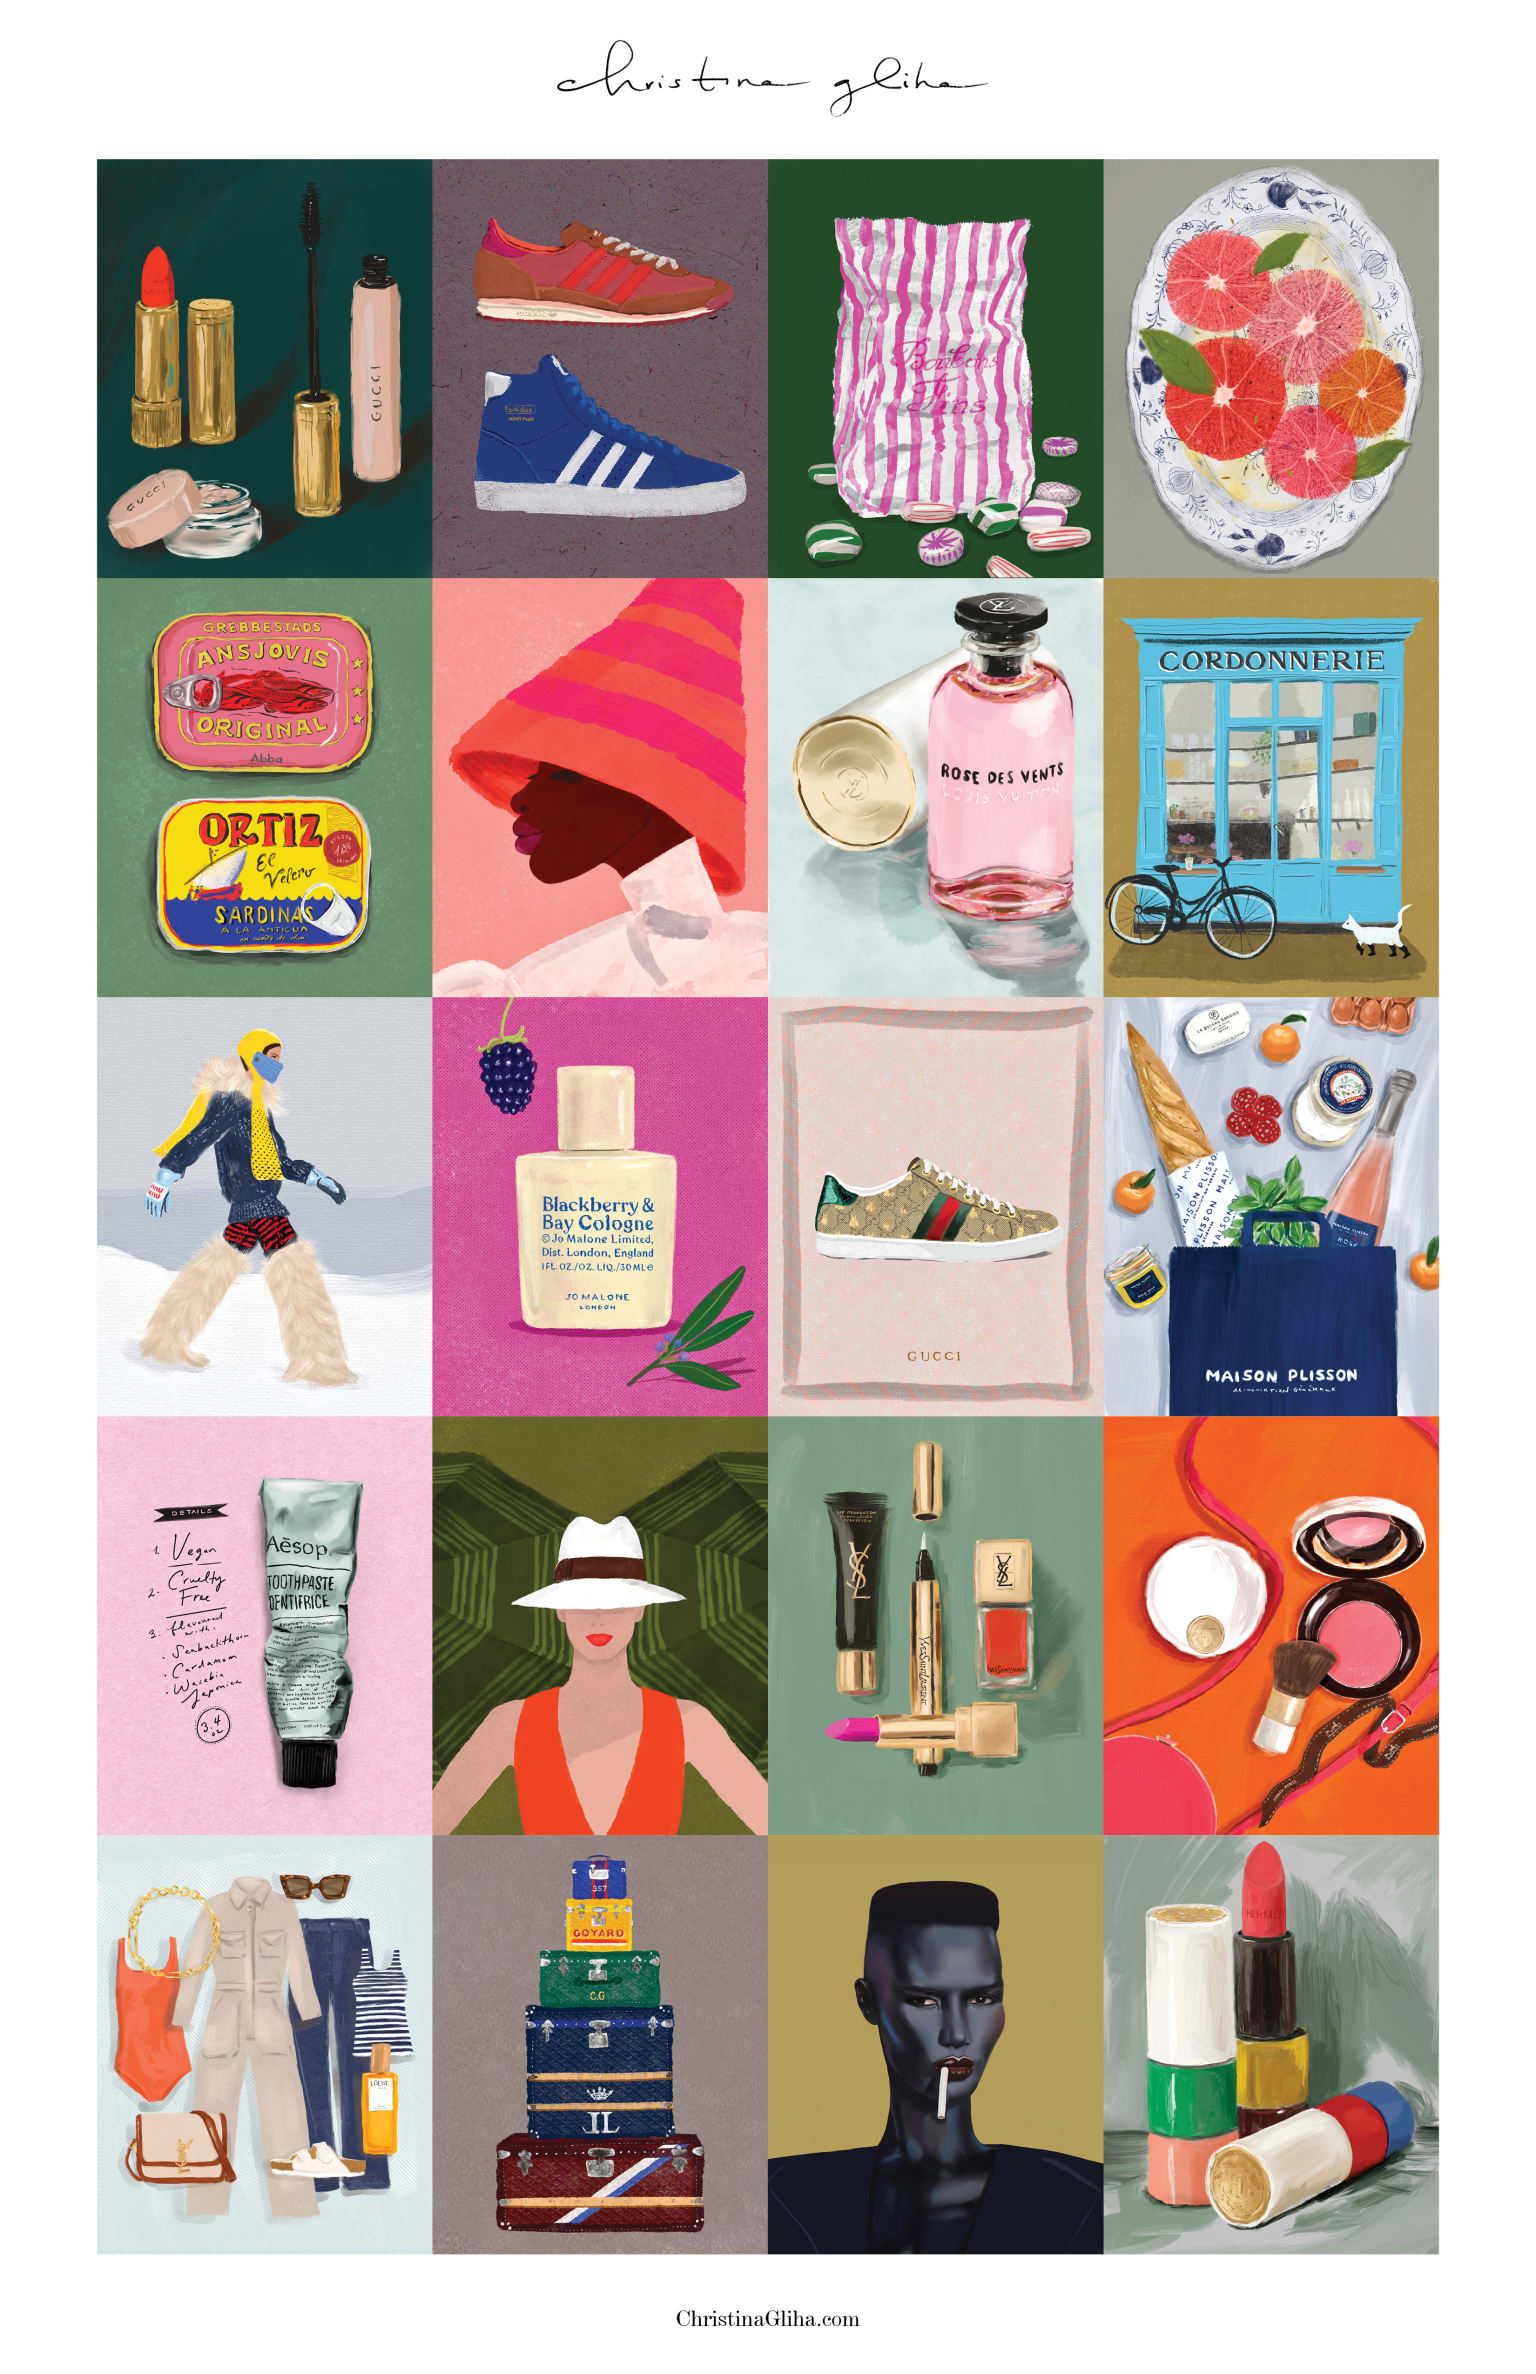 Overview of Illustration Work